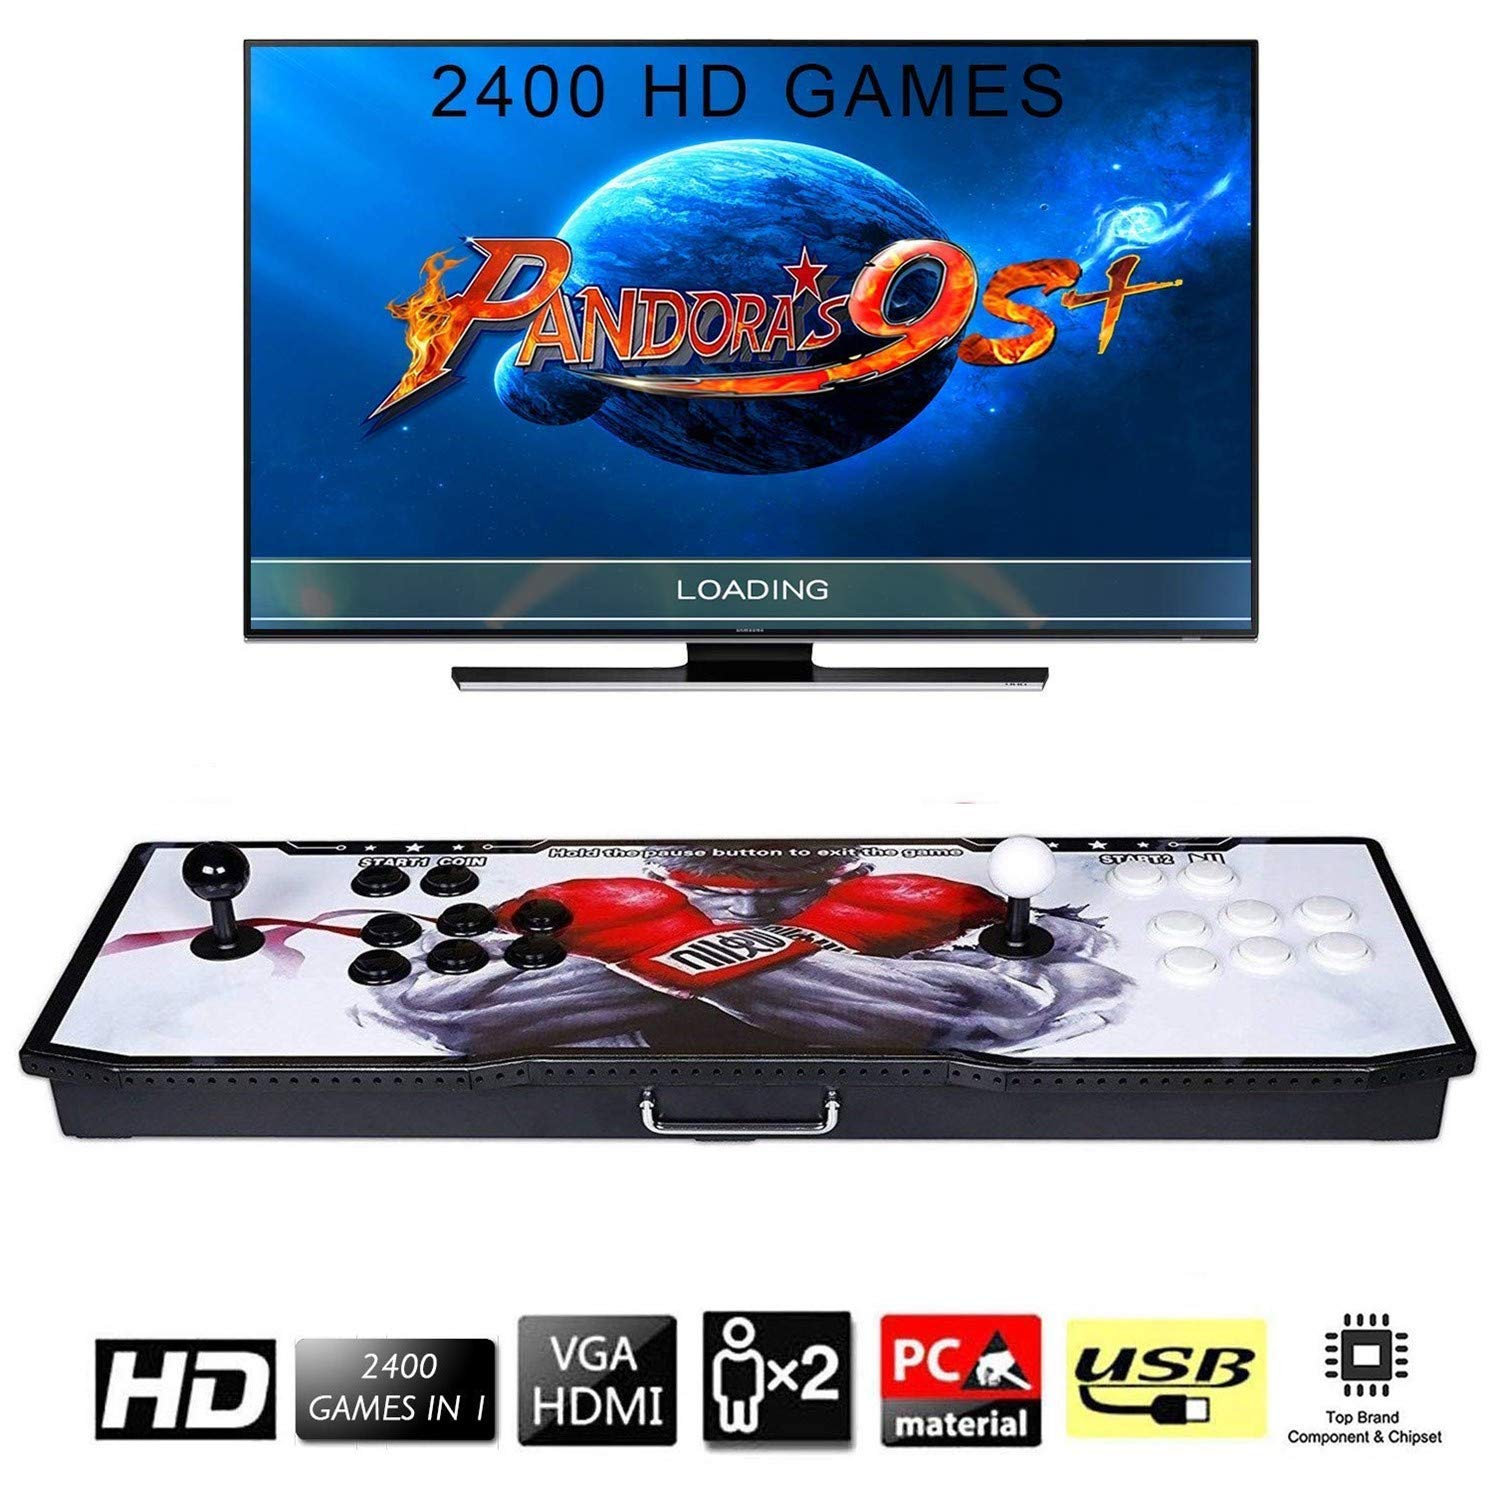 【2400 Games in 1】 Arcade Game Console Ultra Slim Metal Double Stick 2400 Classic Arcade Game Machine 2 Players Pandoras Box 6S 1280X720 Full HD Video Game Console for Computer & Projector & TV by TanDer (Image #1)